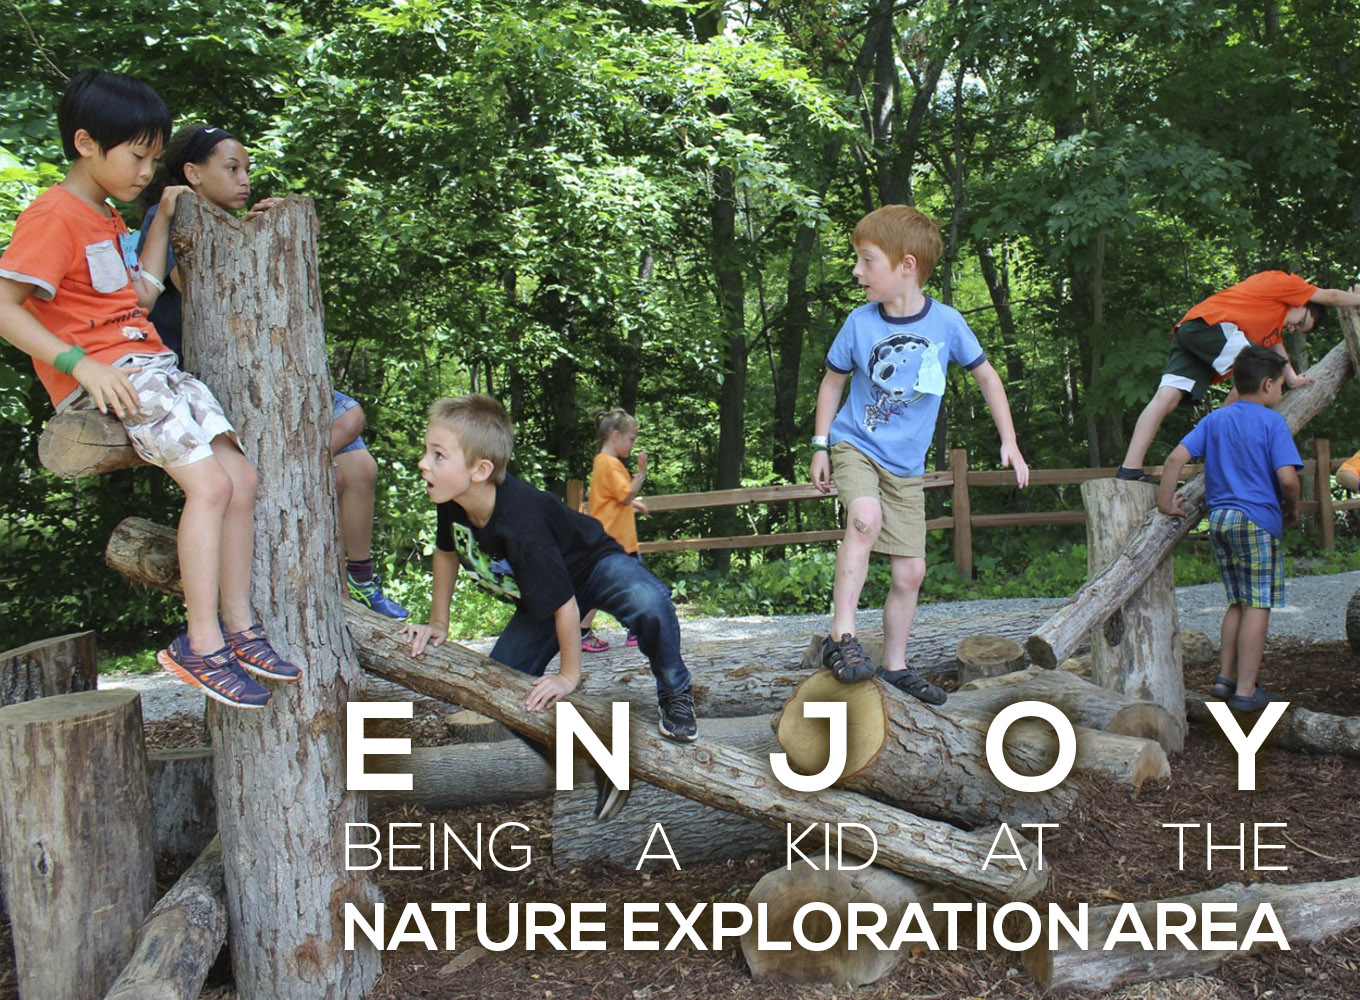 Enjoy Being A Kid at the Nature Exploration Area